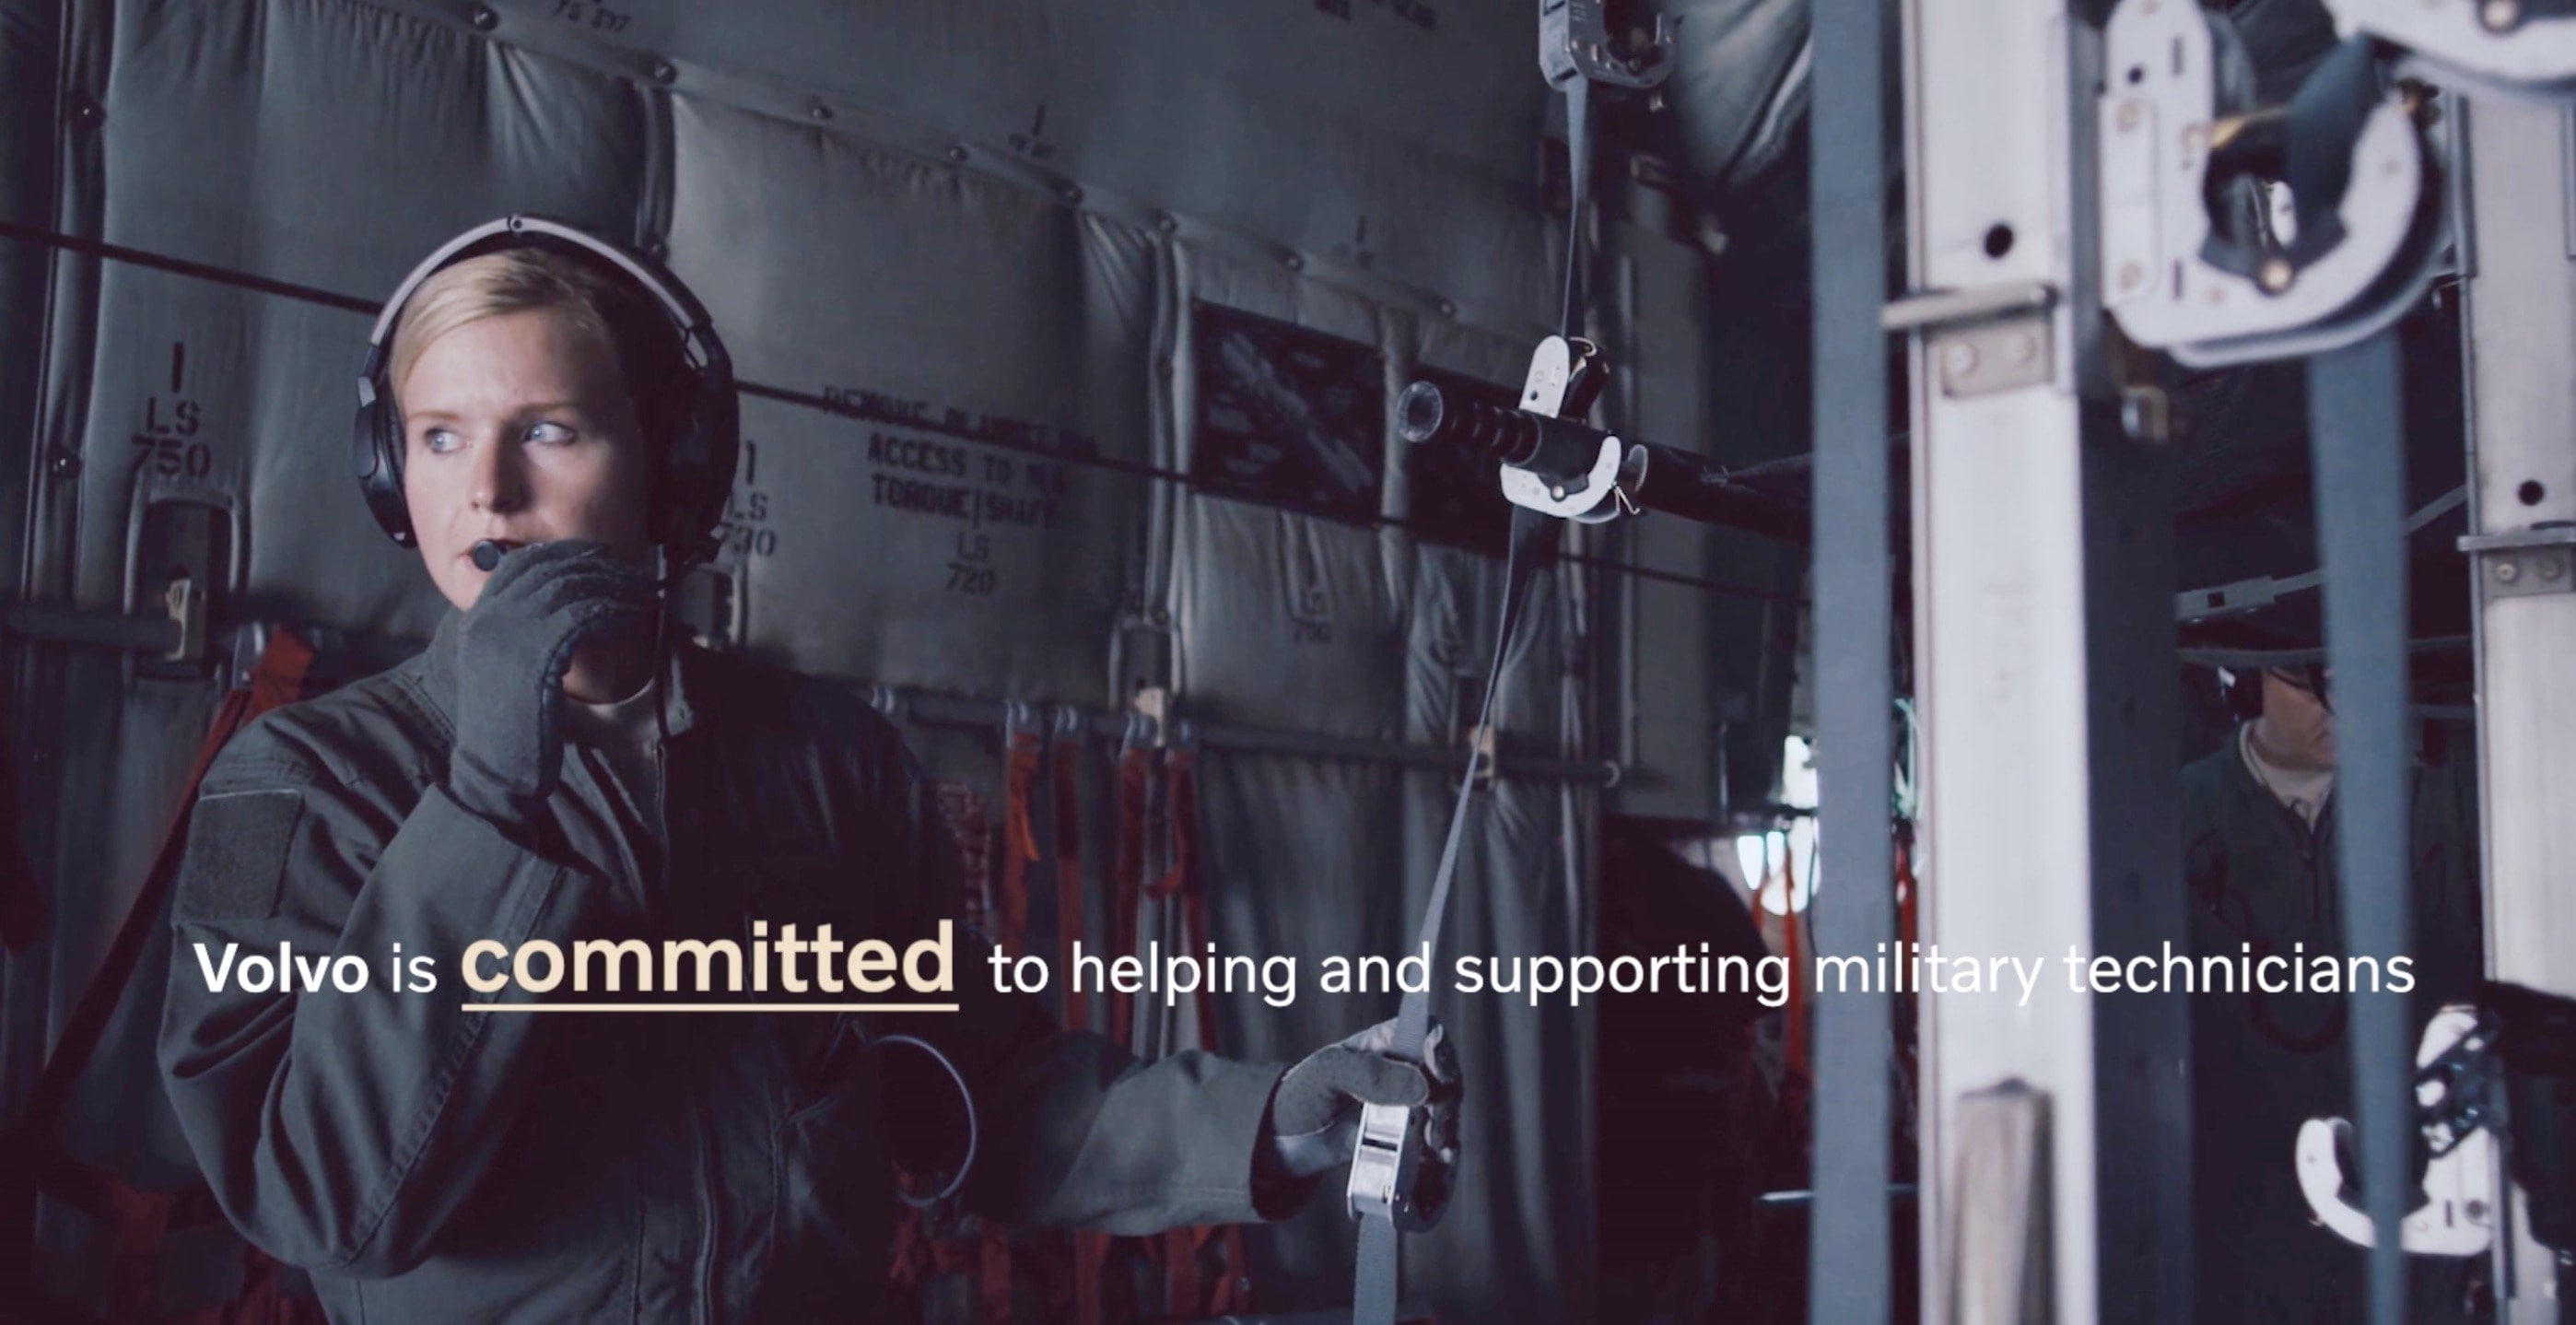 Volvo gives U.S. Veterans opportunities to apply their skills in the $1T auto industry